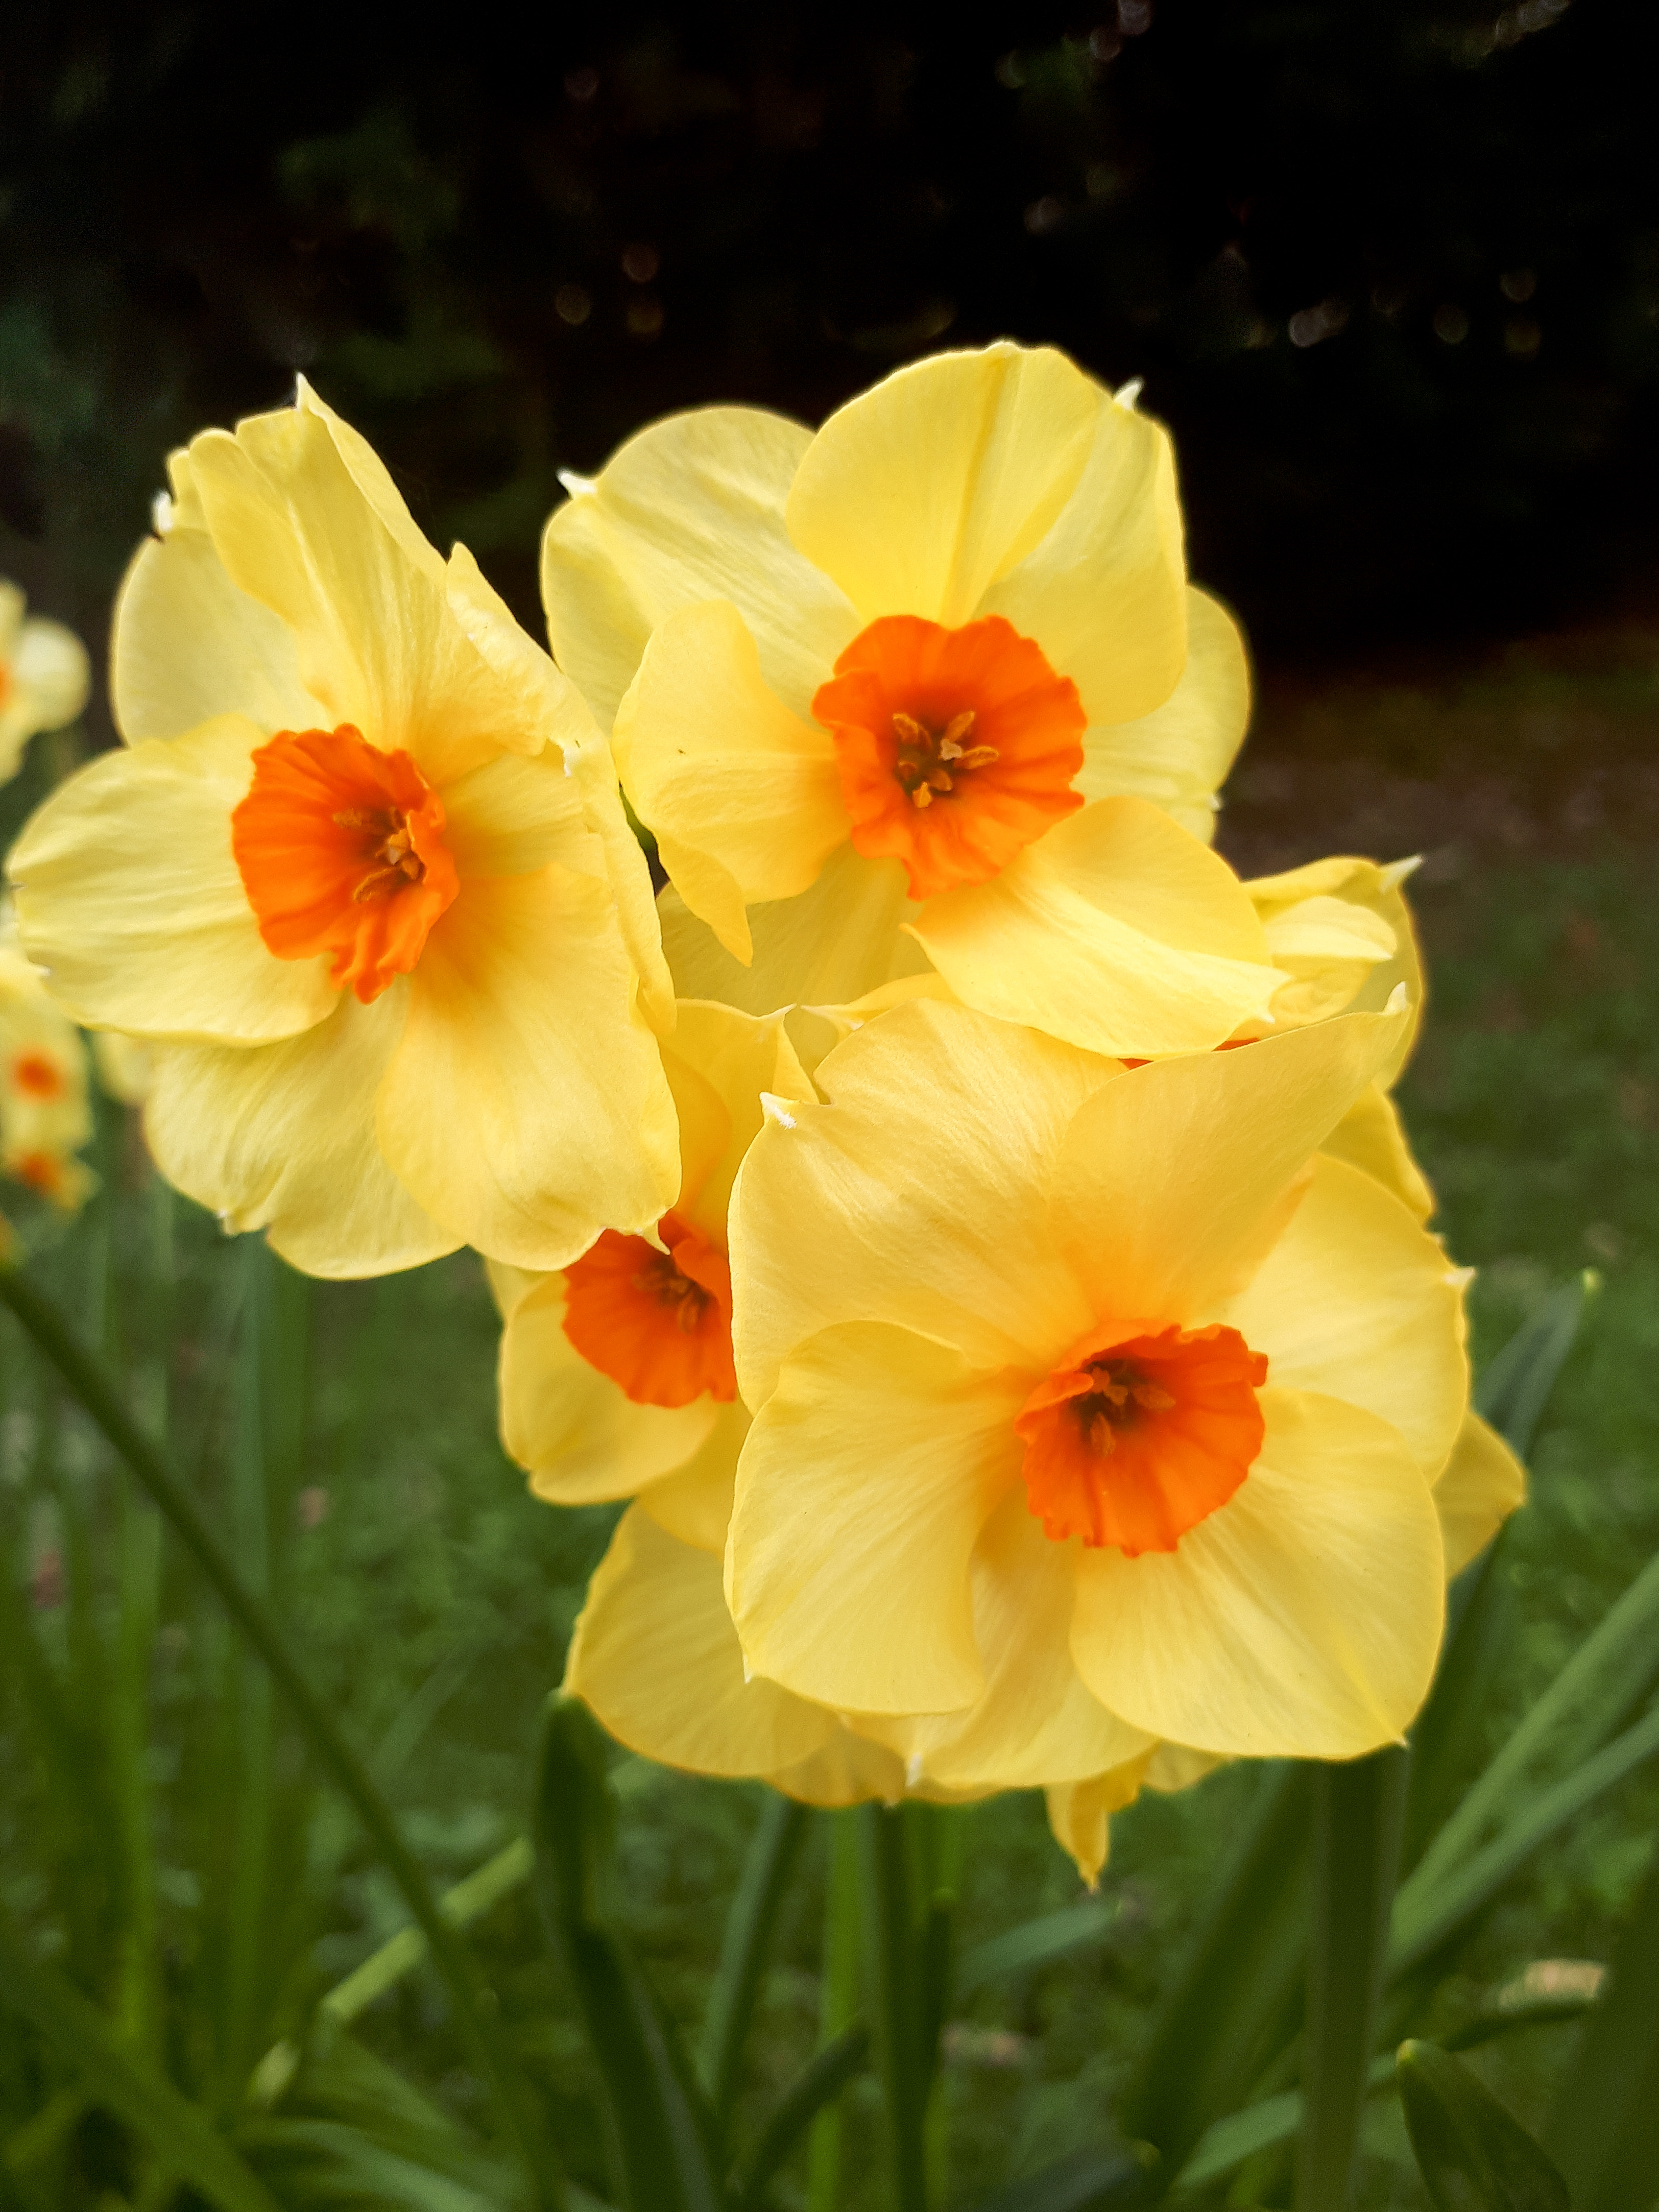 Small Orange and Yellow Daffodils in the Garden